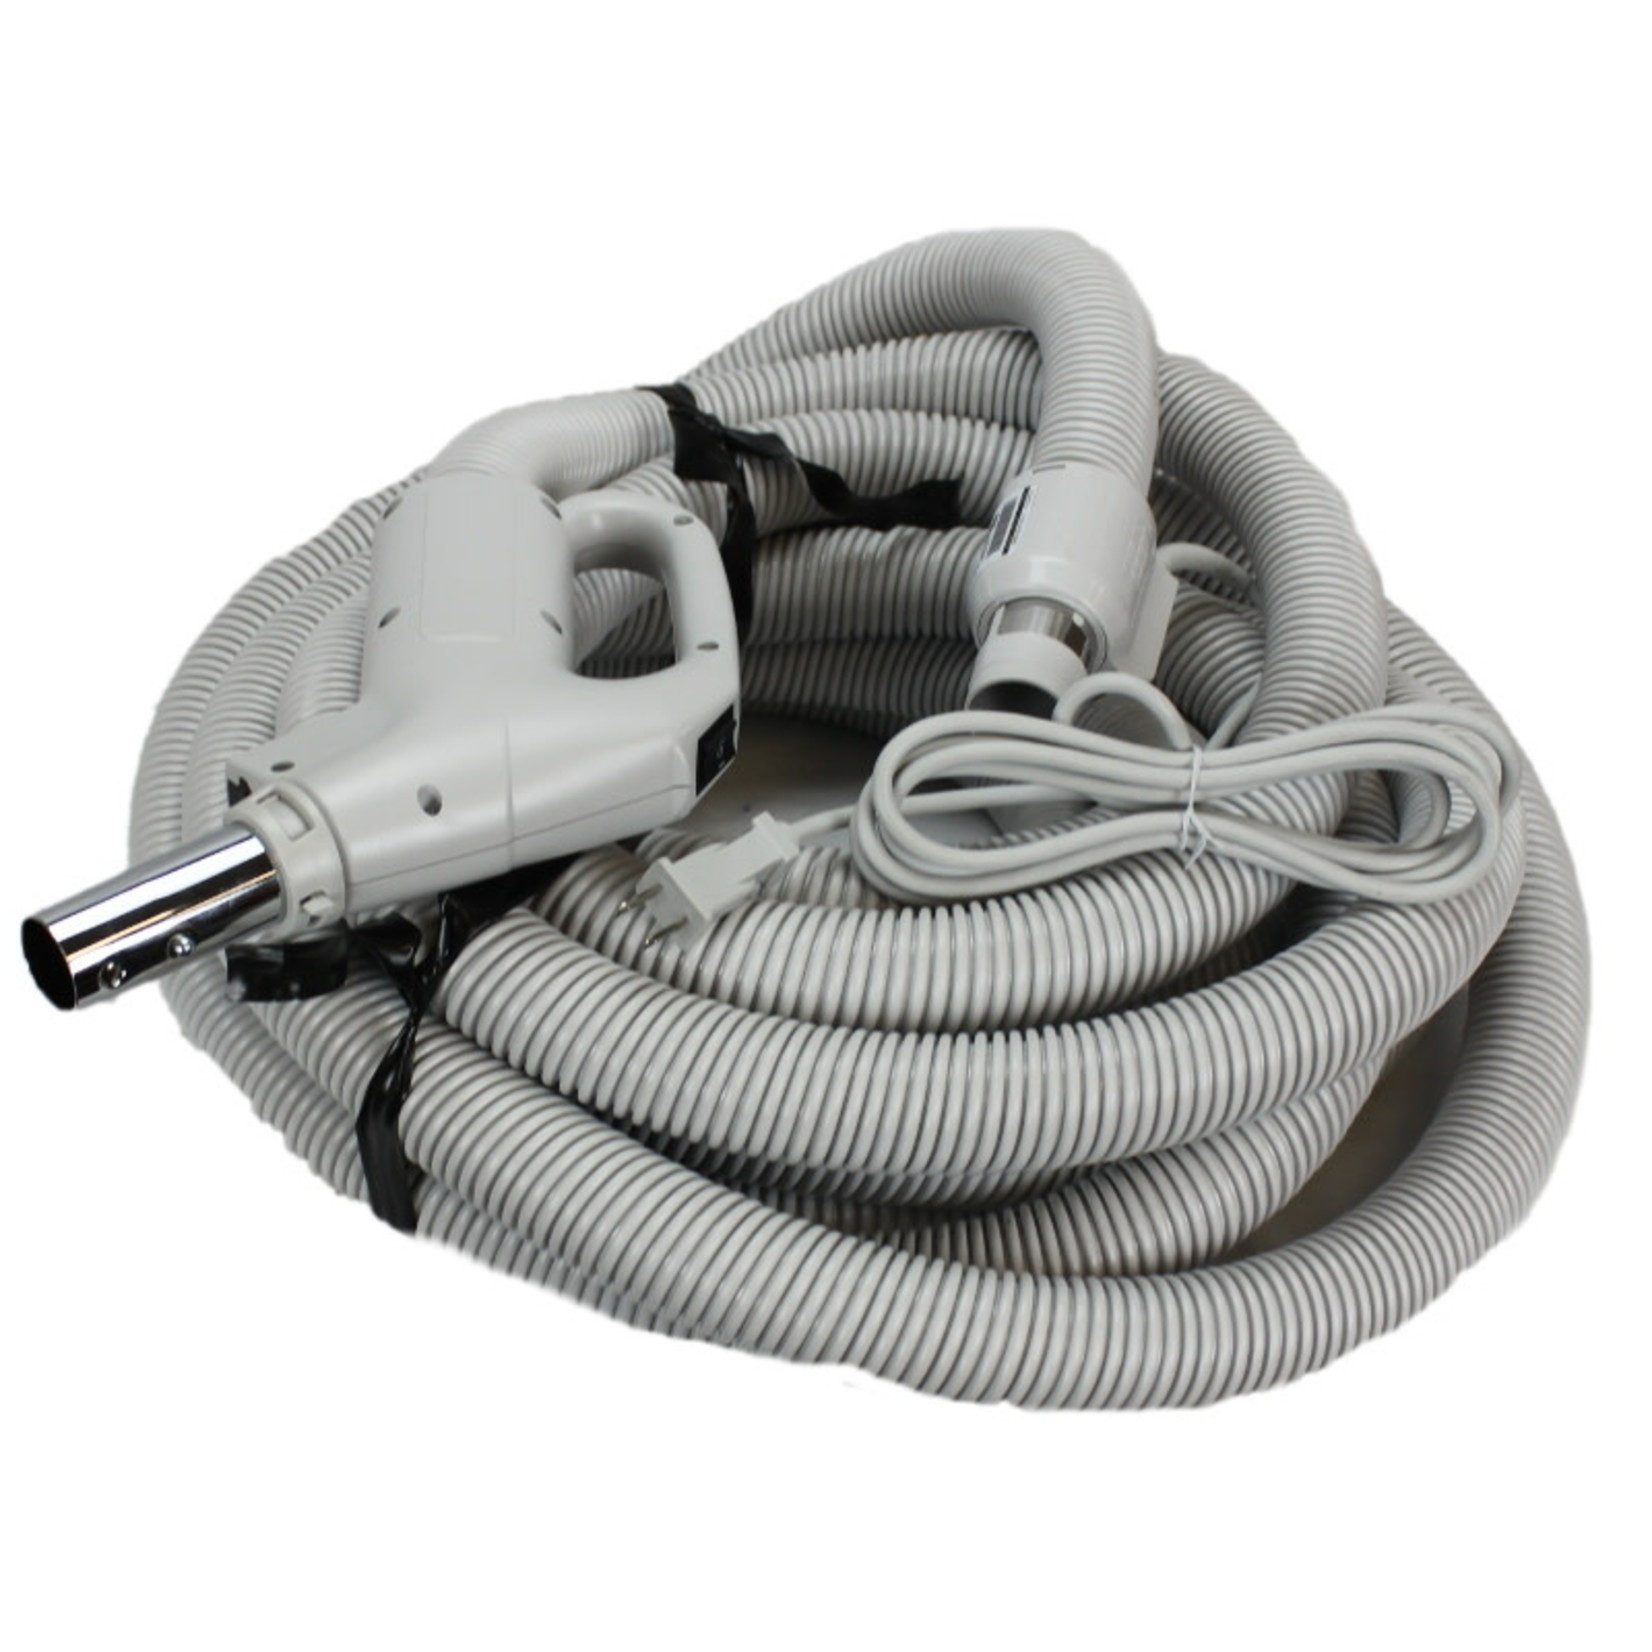 "Plastiflex Copy of Plastiflex Gray 30' x 1 1/4"" Dual Voltage Hose"